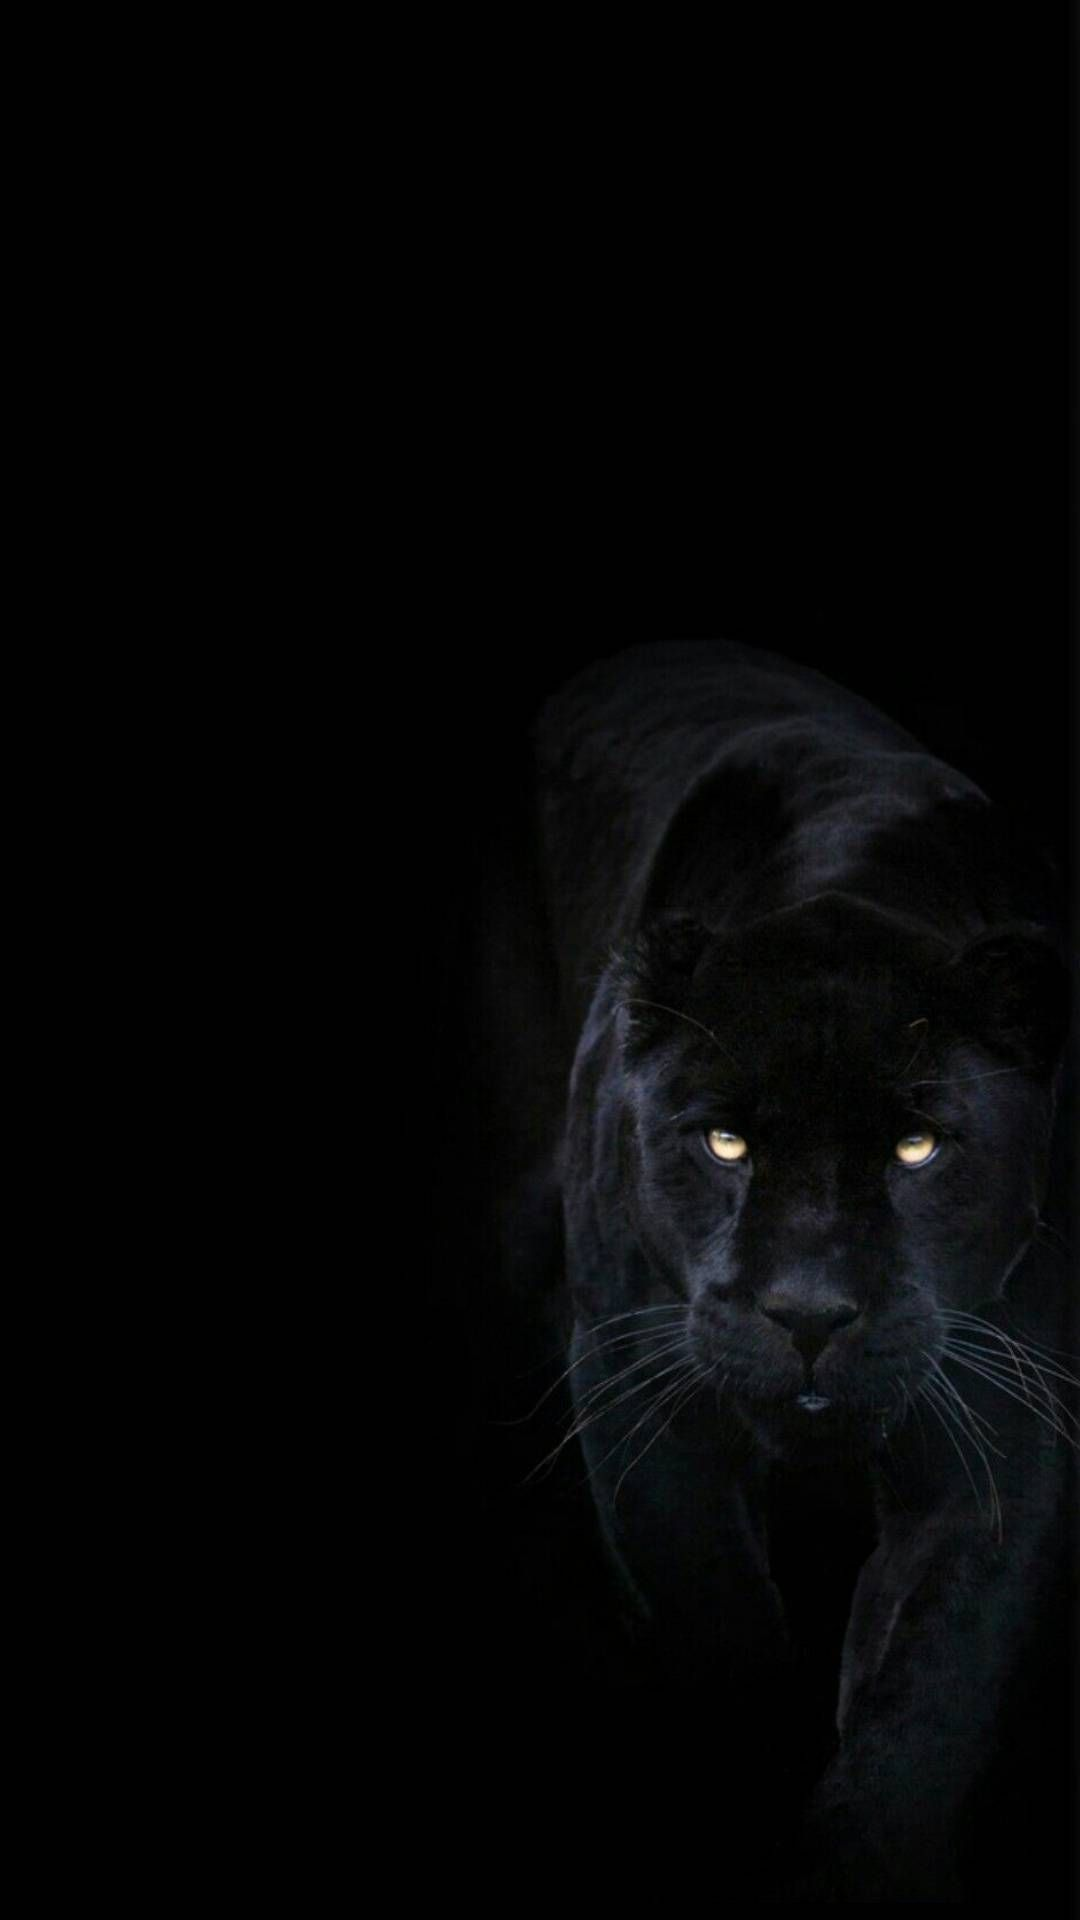 Dark Black Panther Animal Wallpaper